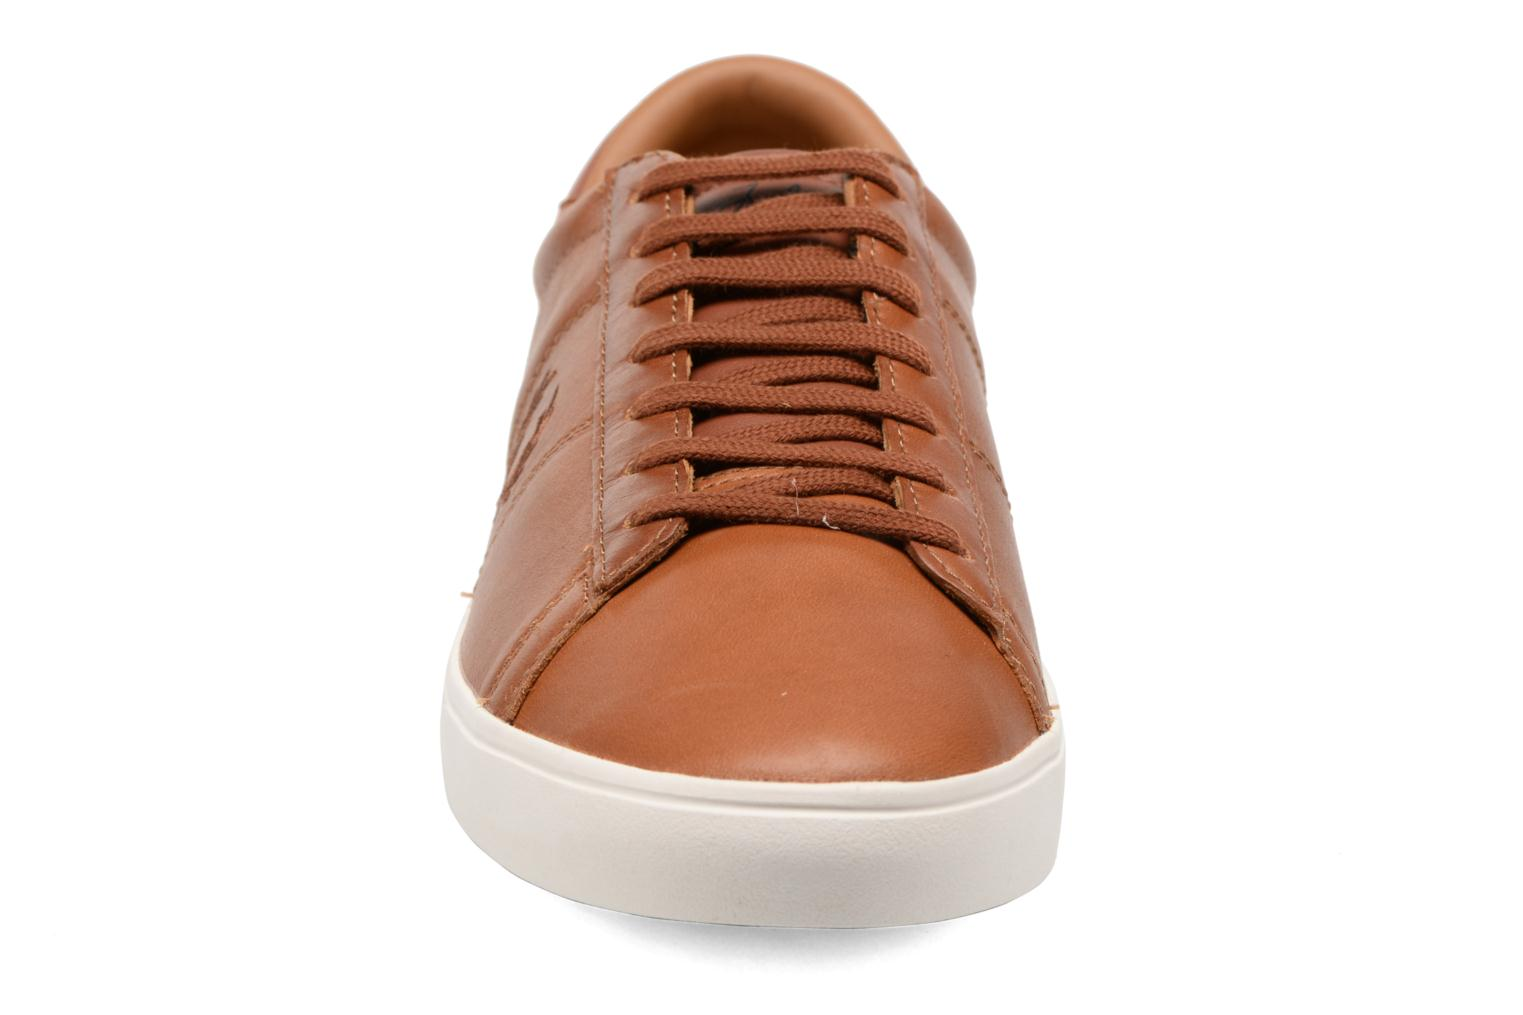 Spencer Waxed leather Tan